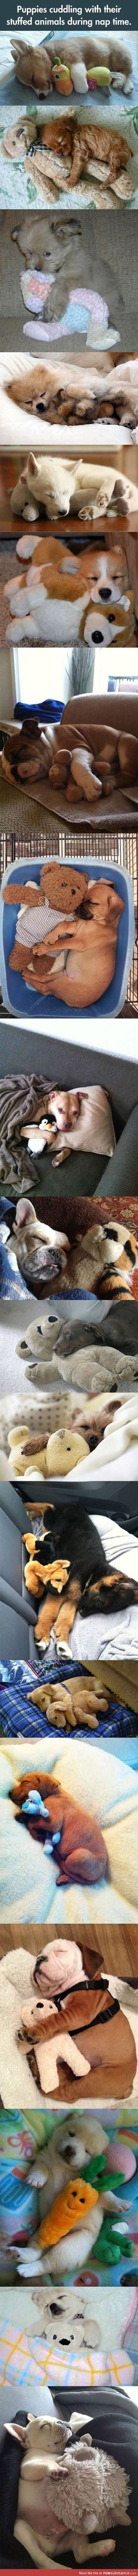 Cuteness overload. Puppies cuddling with stuffed animals.